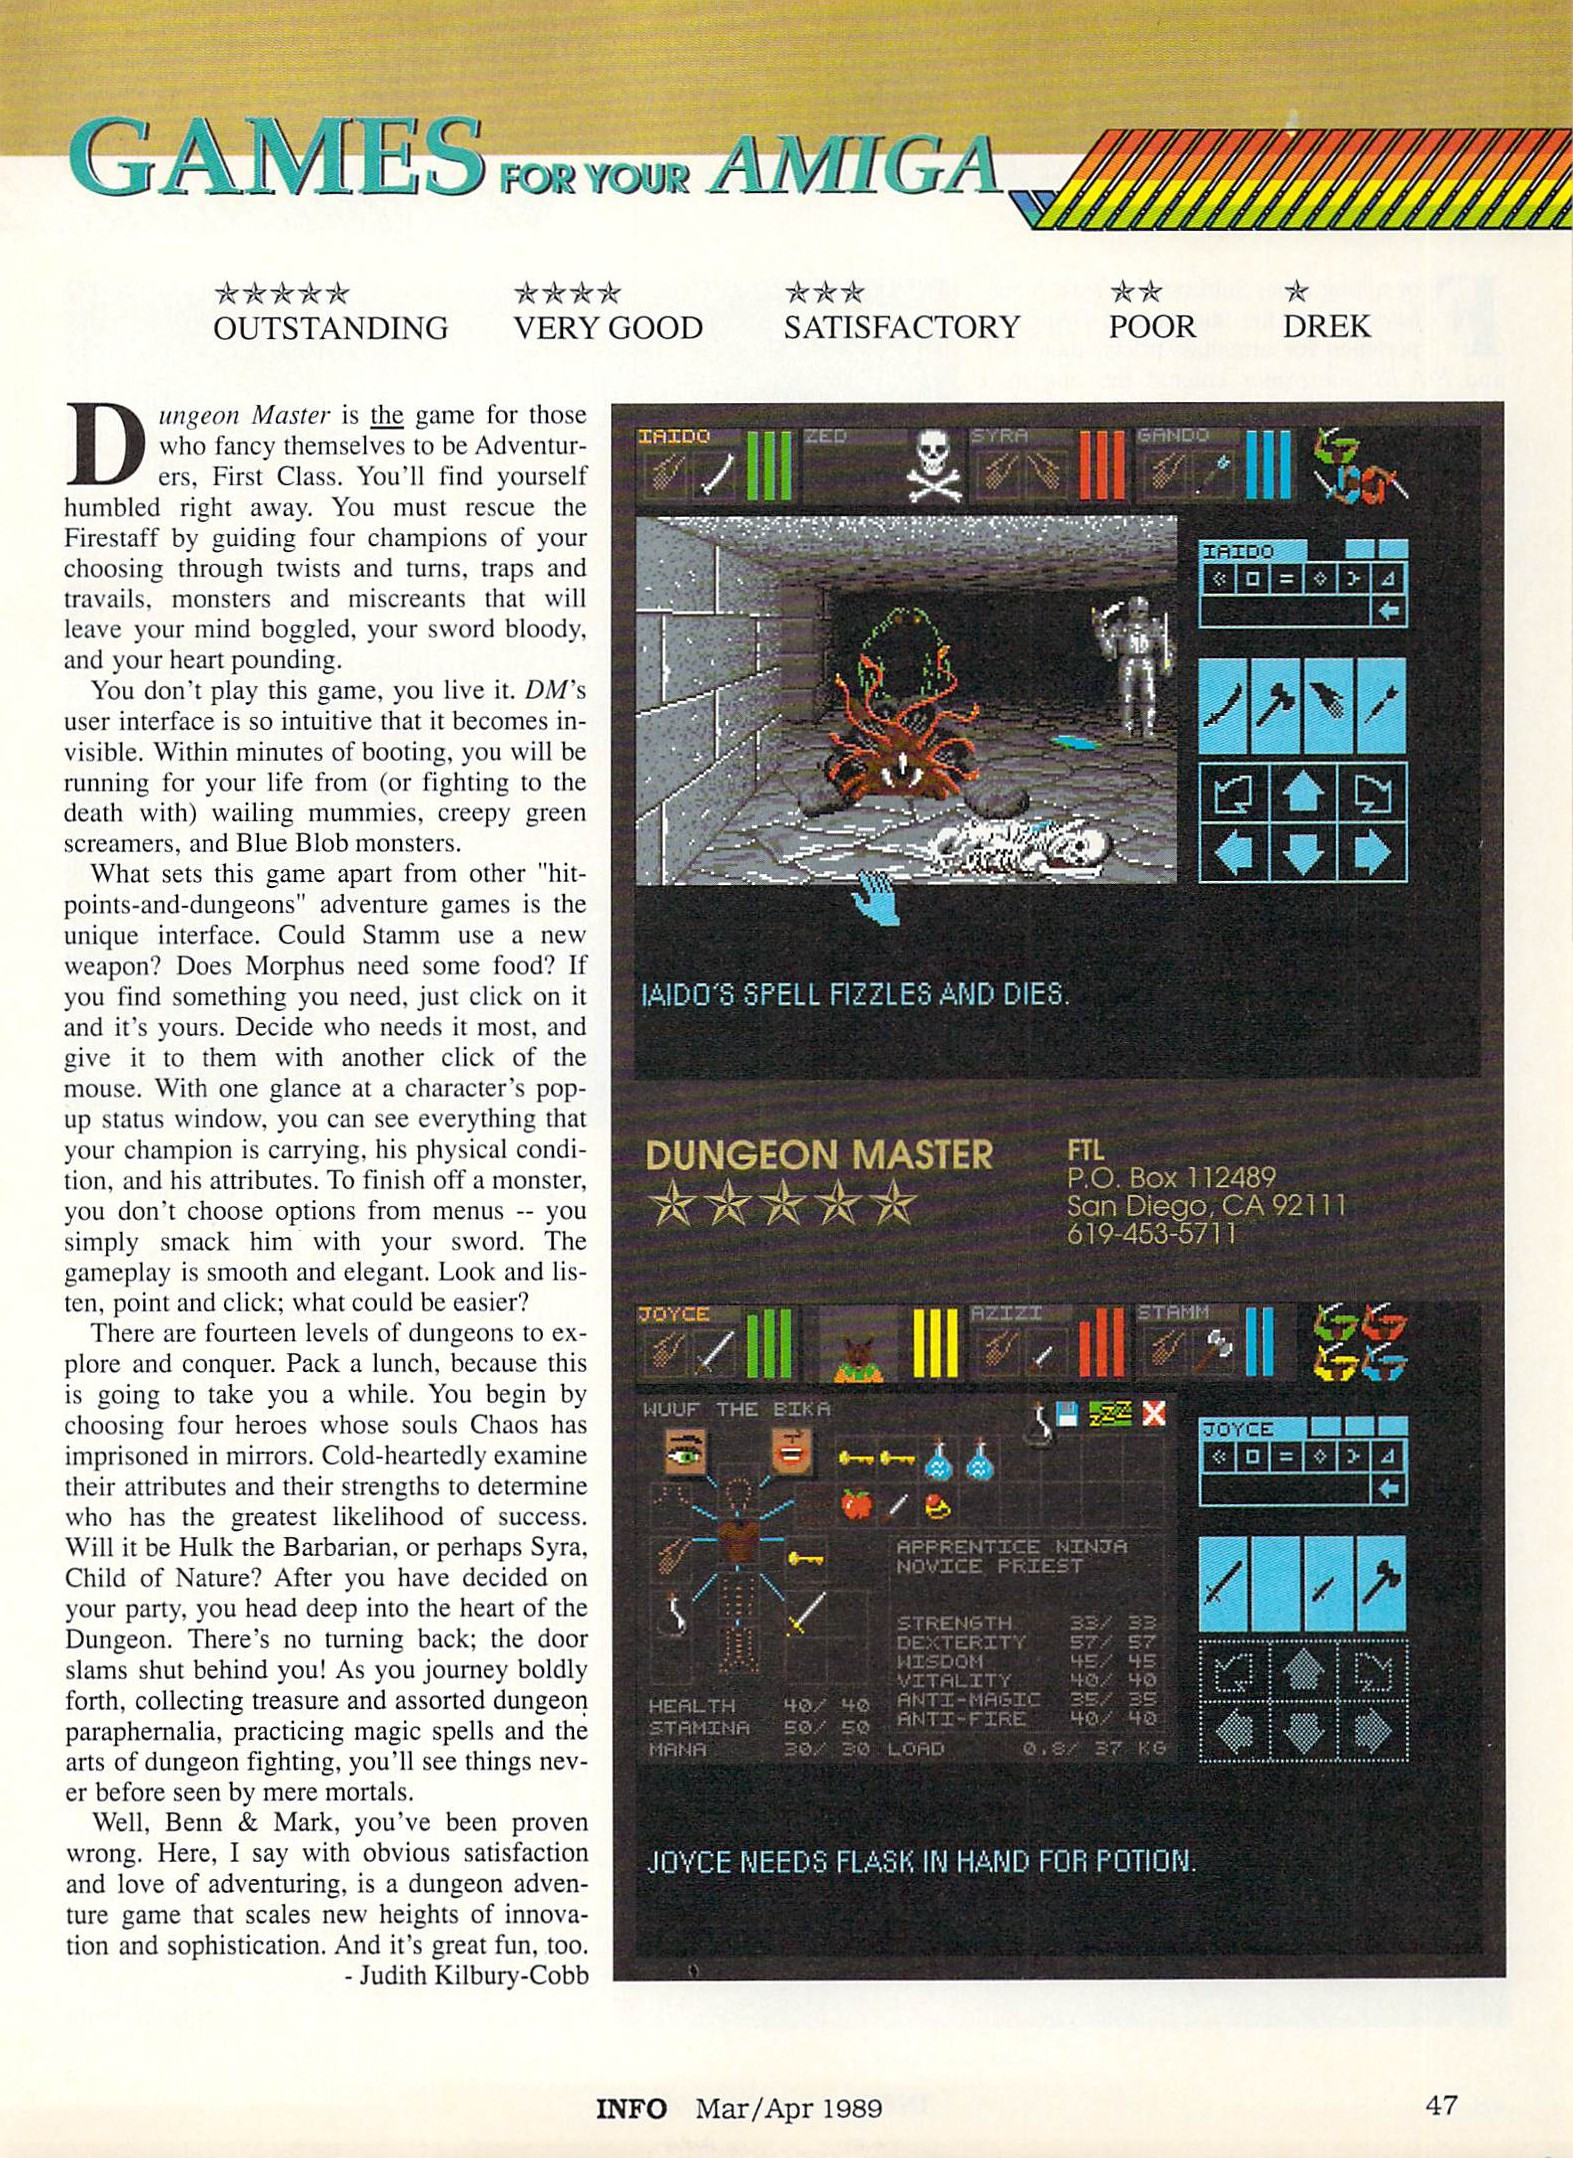 Dungeon Master for Amiga Review published in American magazine 'Info', Issue #25 March-April 1989, Page 47